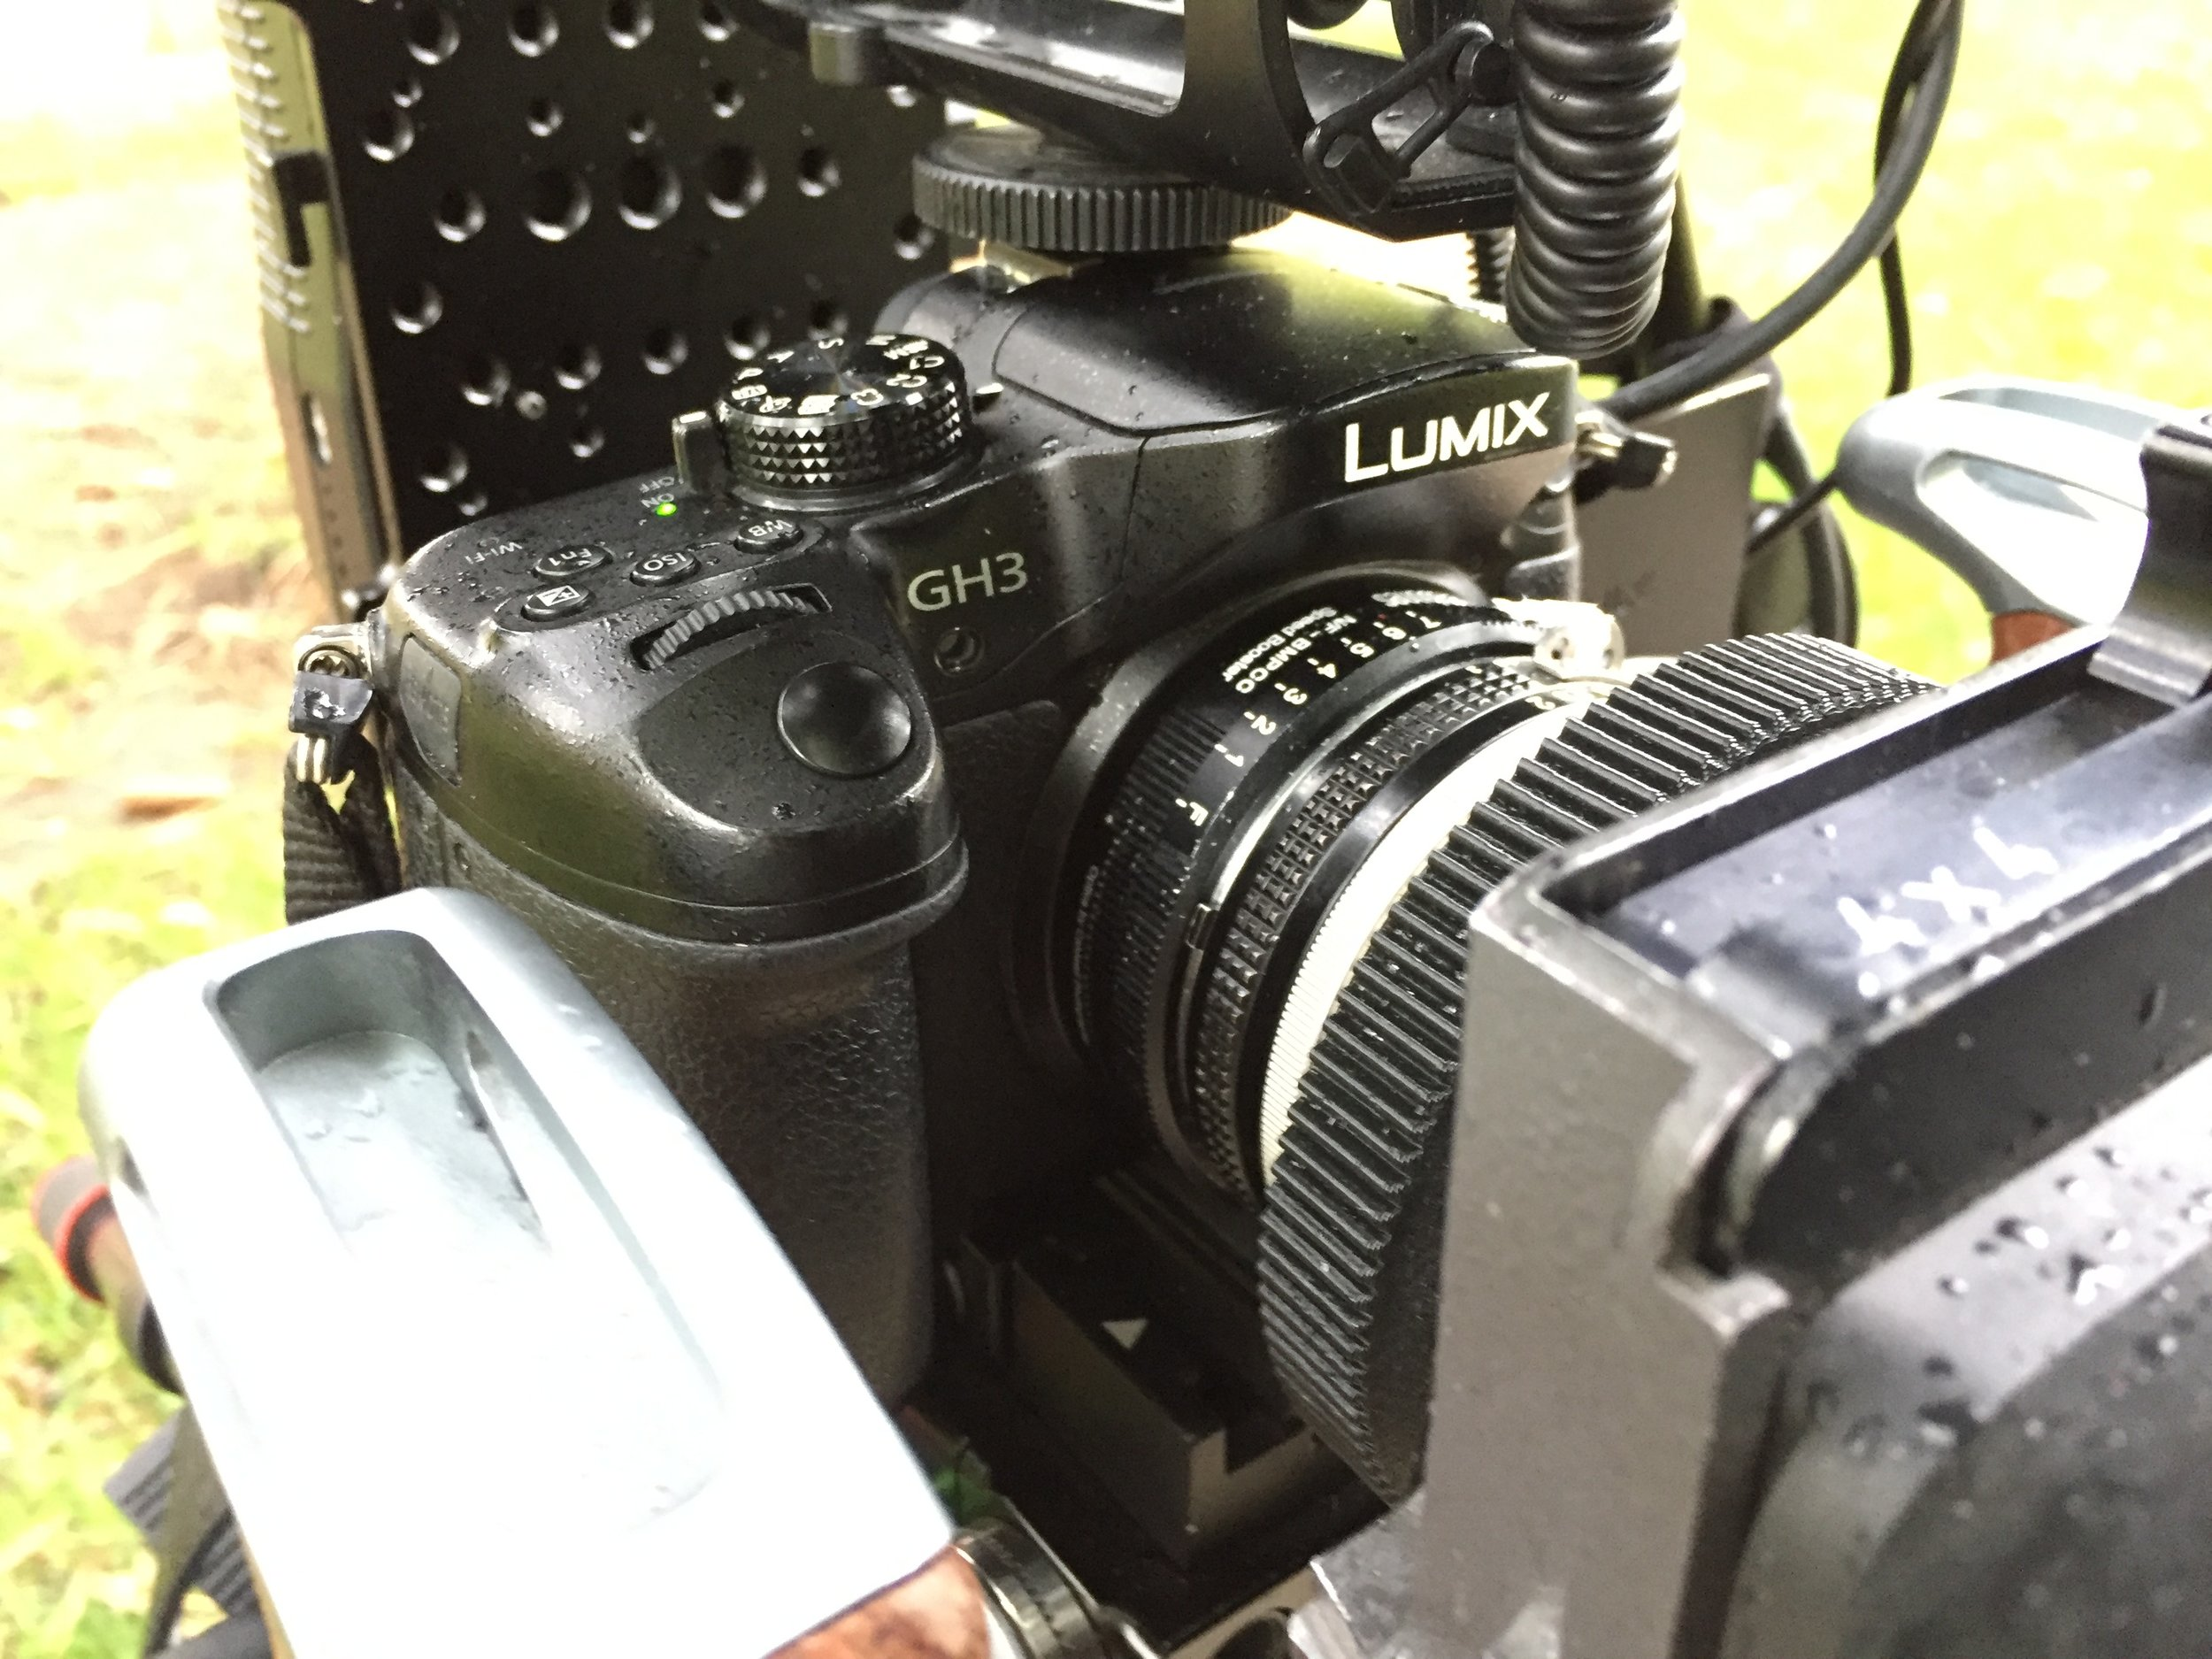 A shot of the camera rig mid-production in the rain. We shot on the Panasonic GH3 and Nikon D7000. The lens was an old Nikkor 24 1.4mm prime + speed booster. In addition, an Arri matte box.